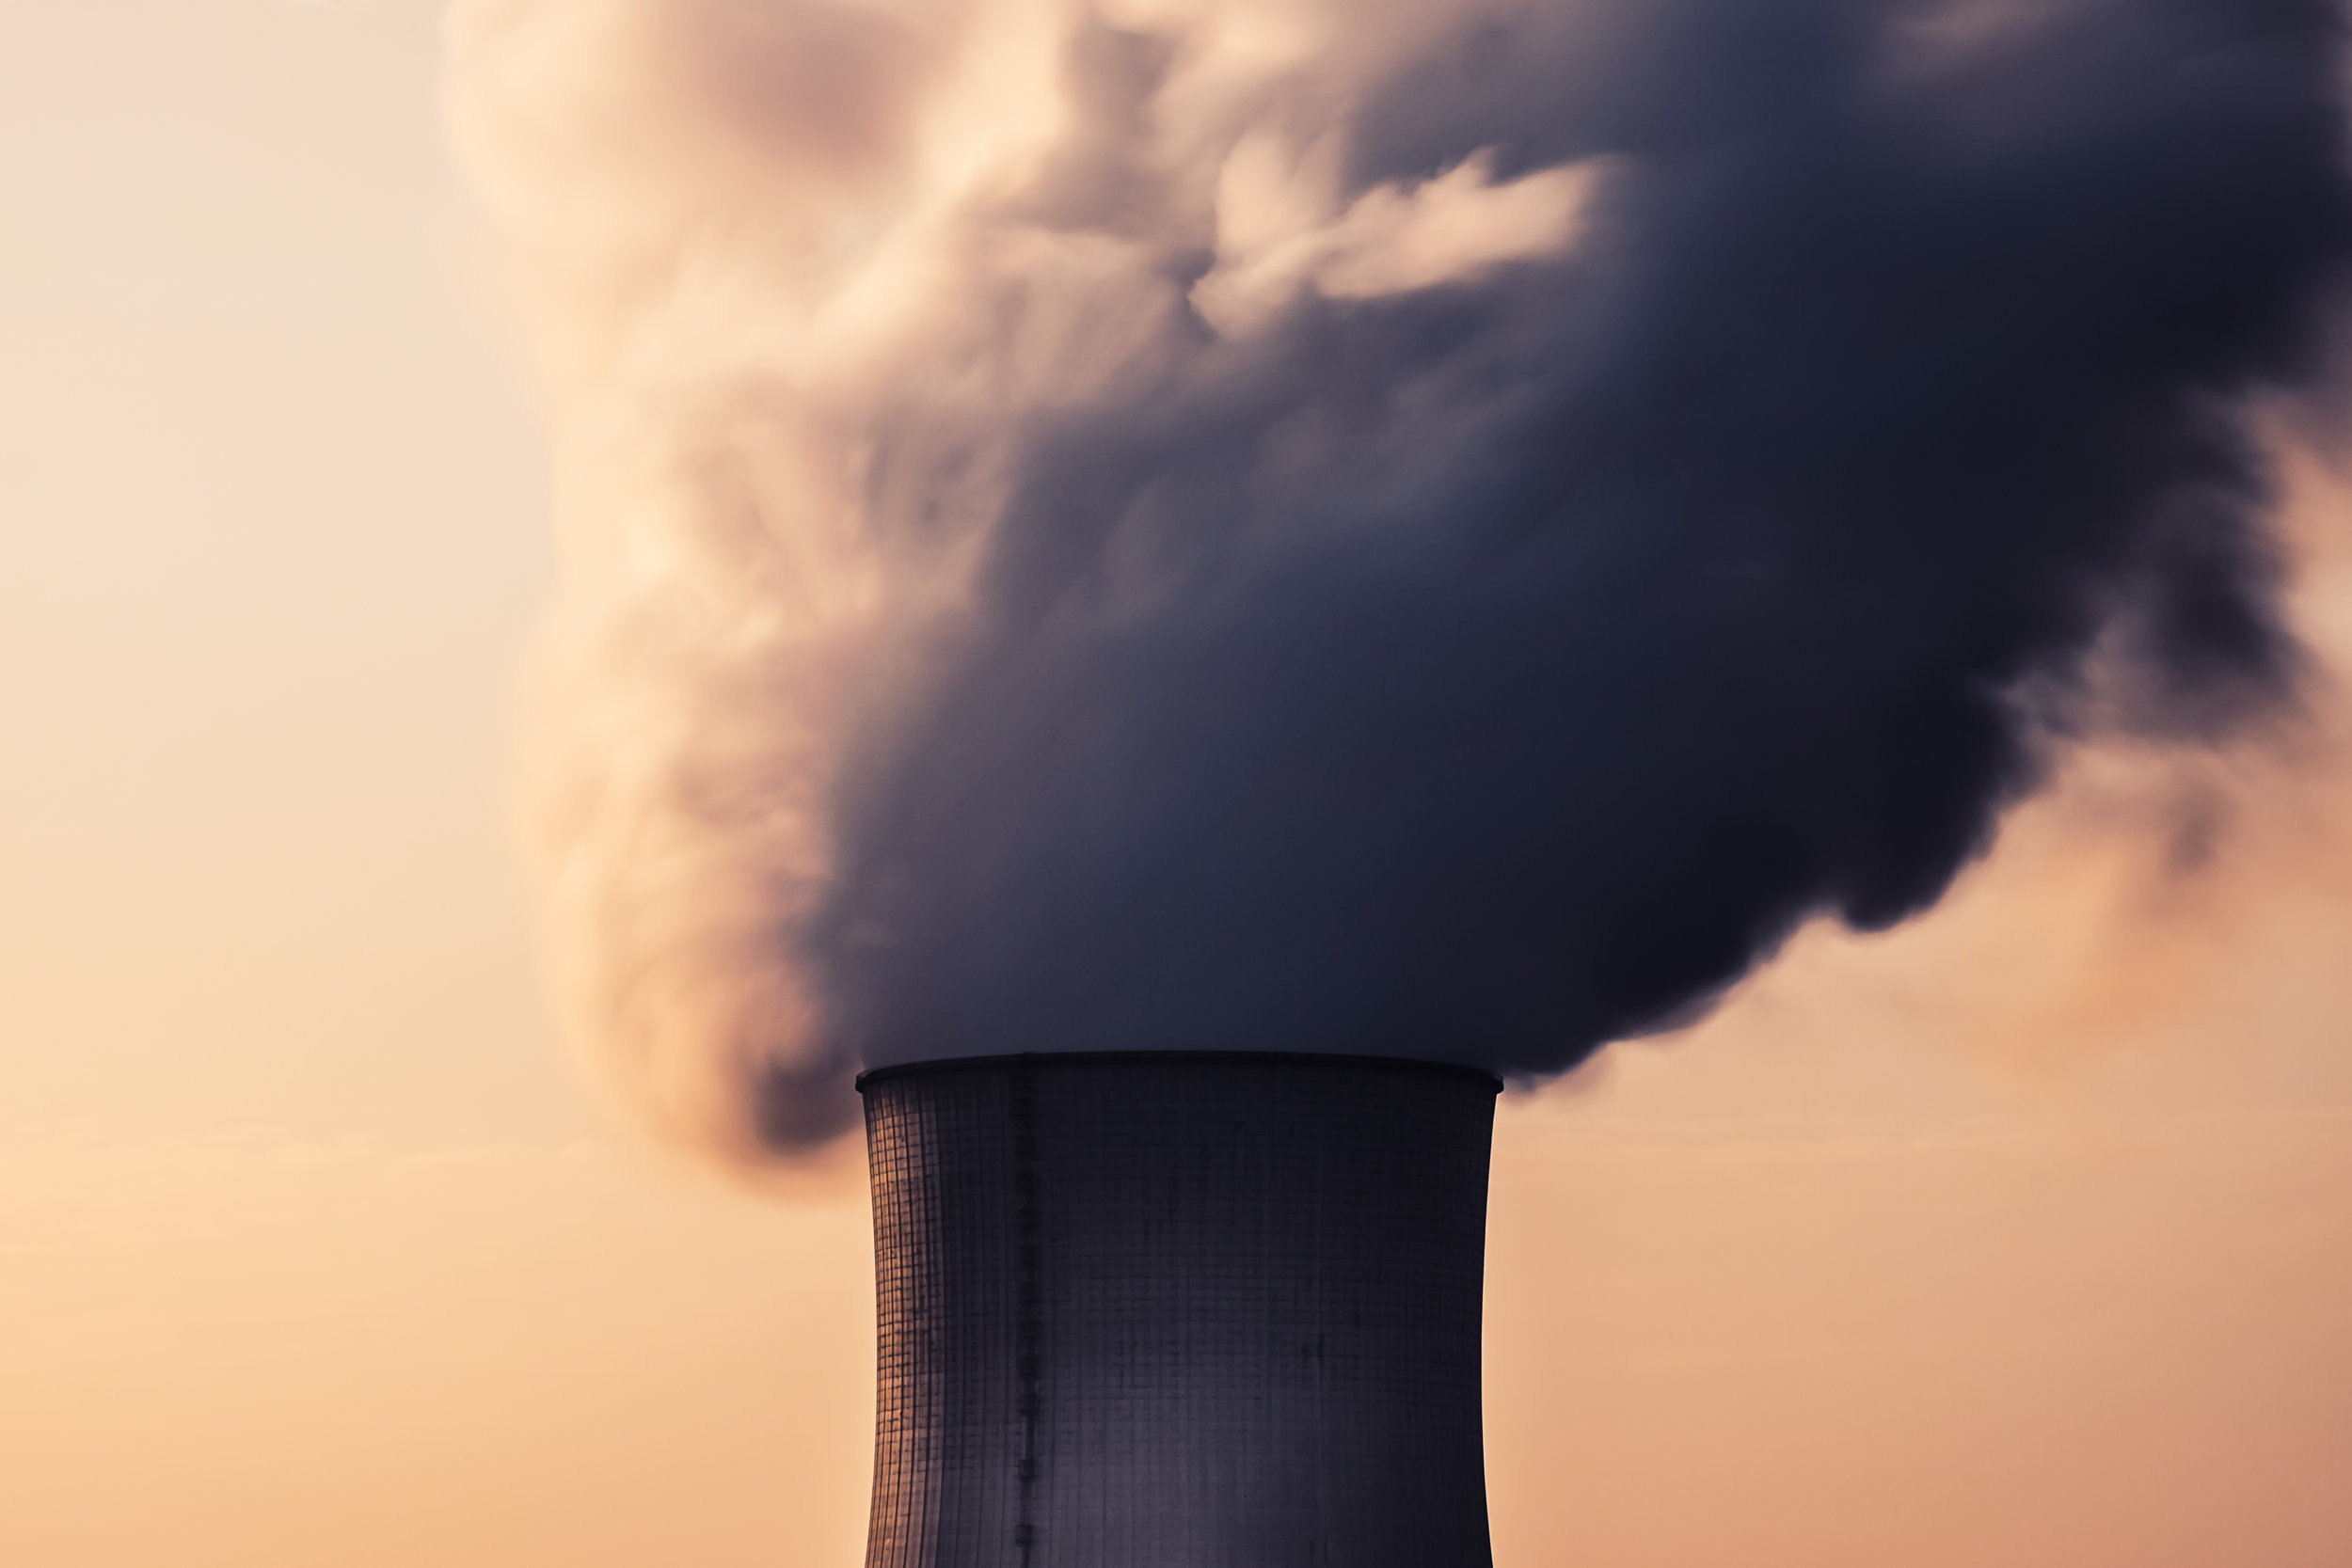 Cooling Tower Blowdown -